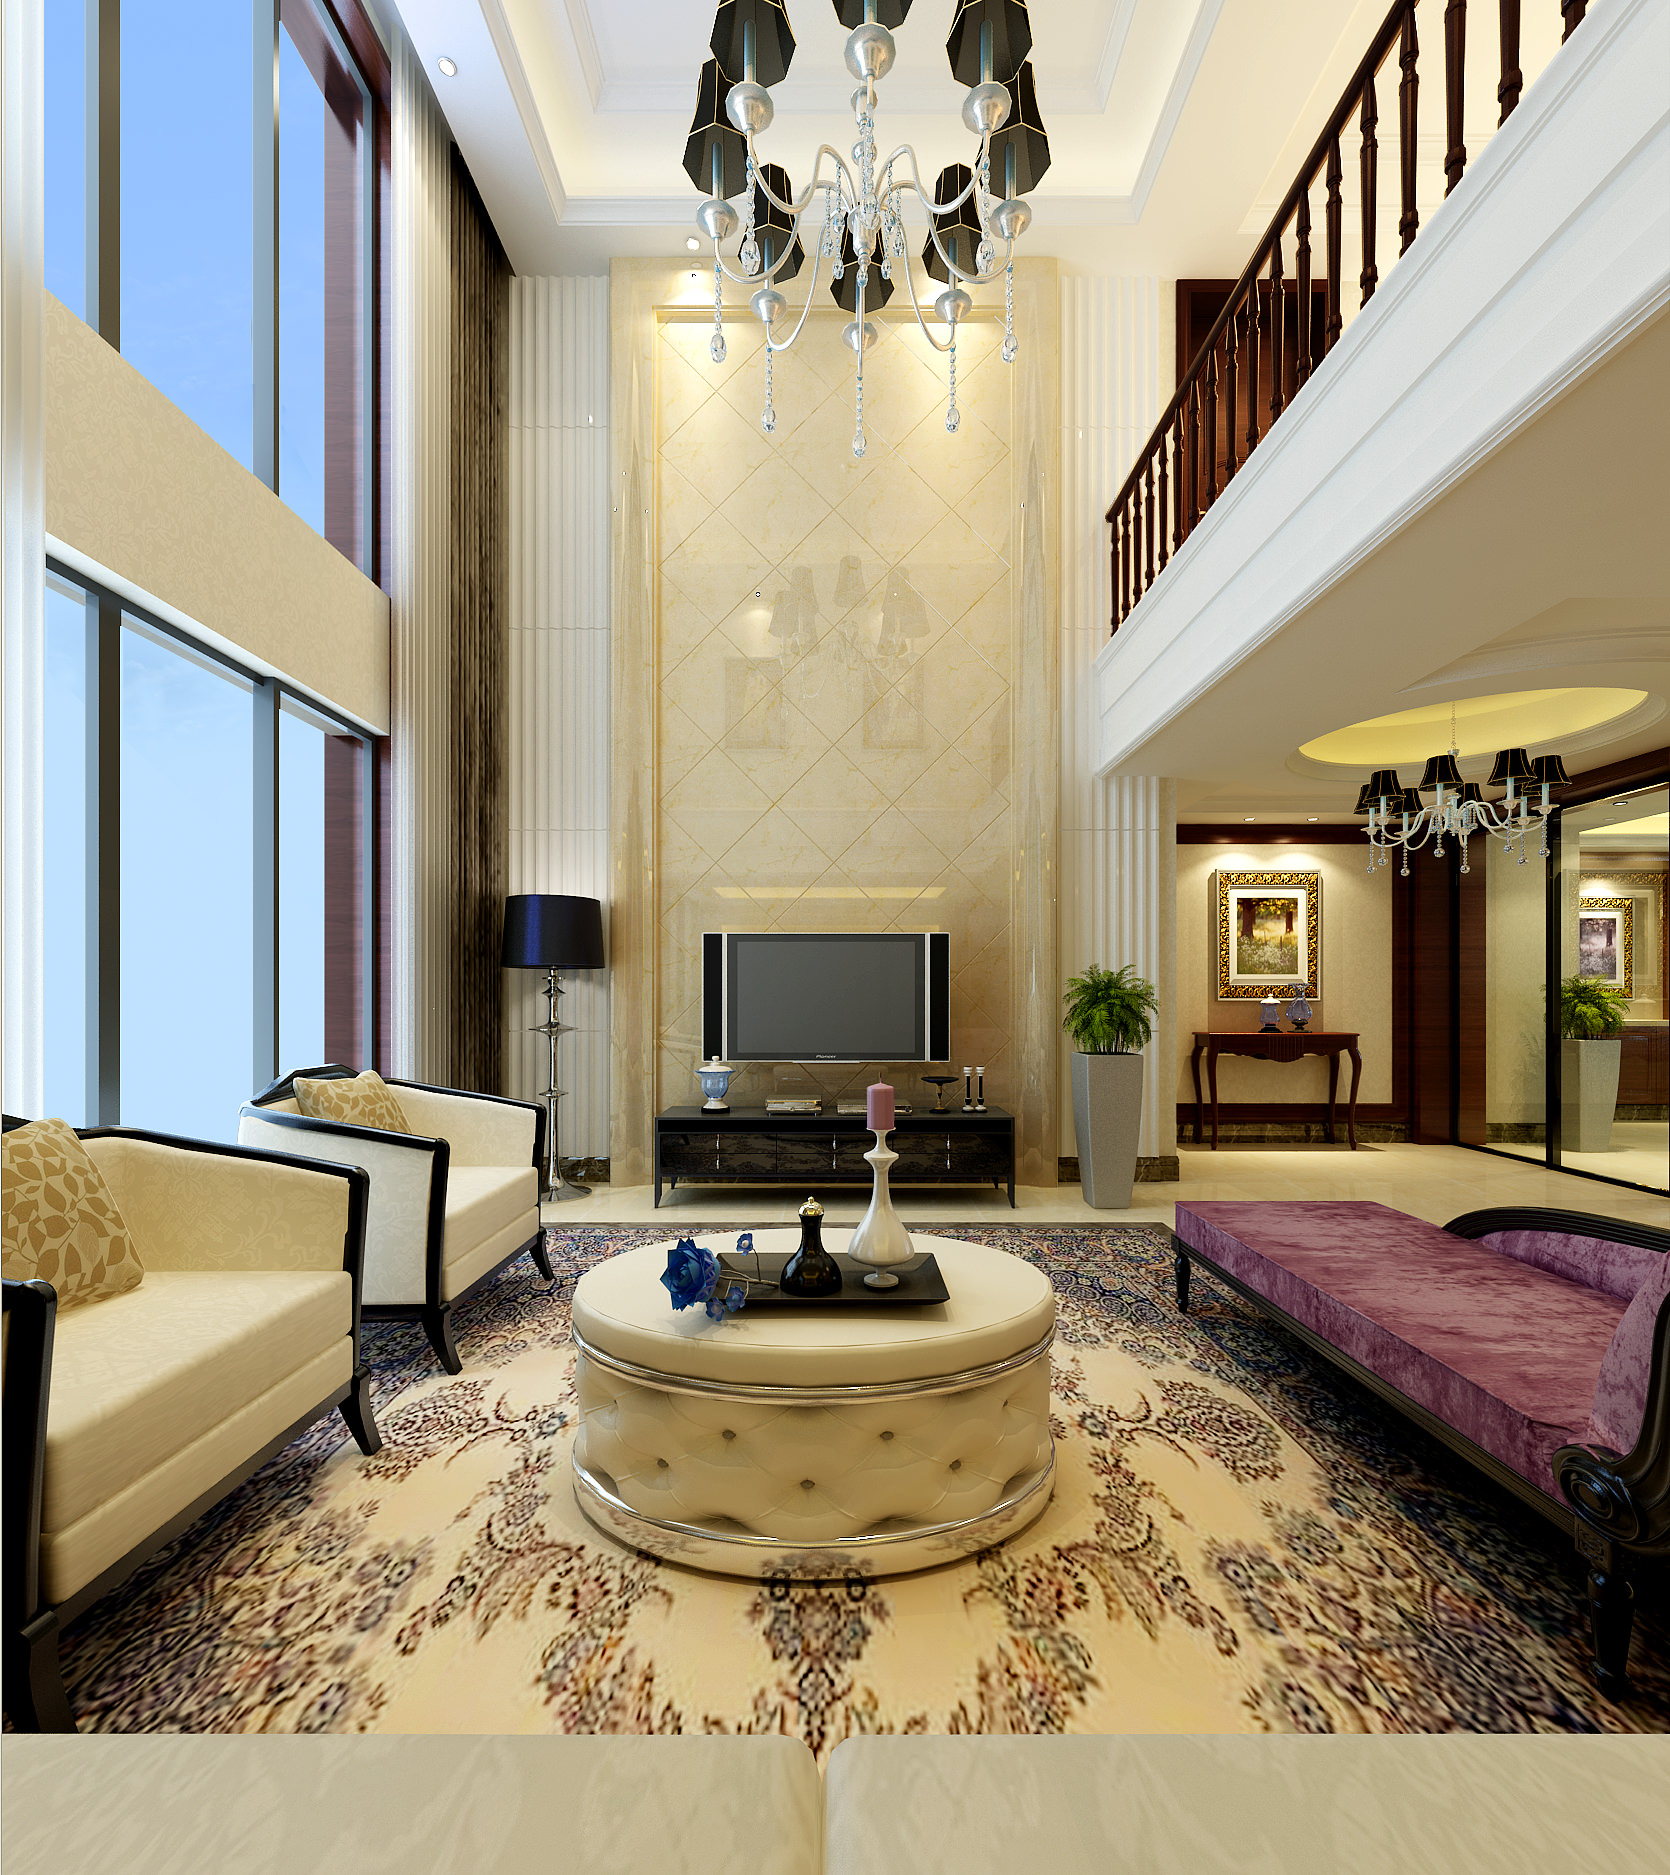 33 Staircase Designs Enriching Modern Interiors With: Modern Living Room With Stairs 3D Model .max